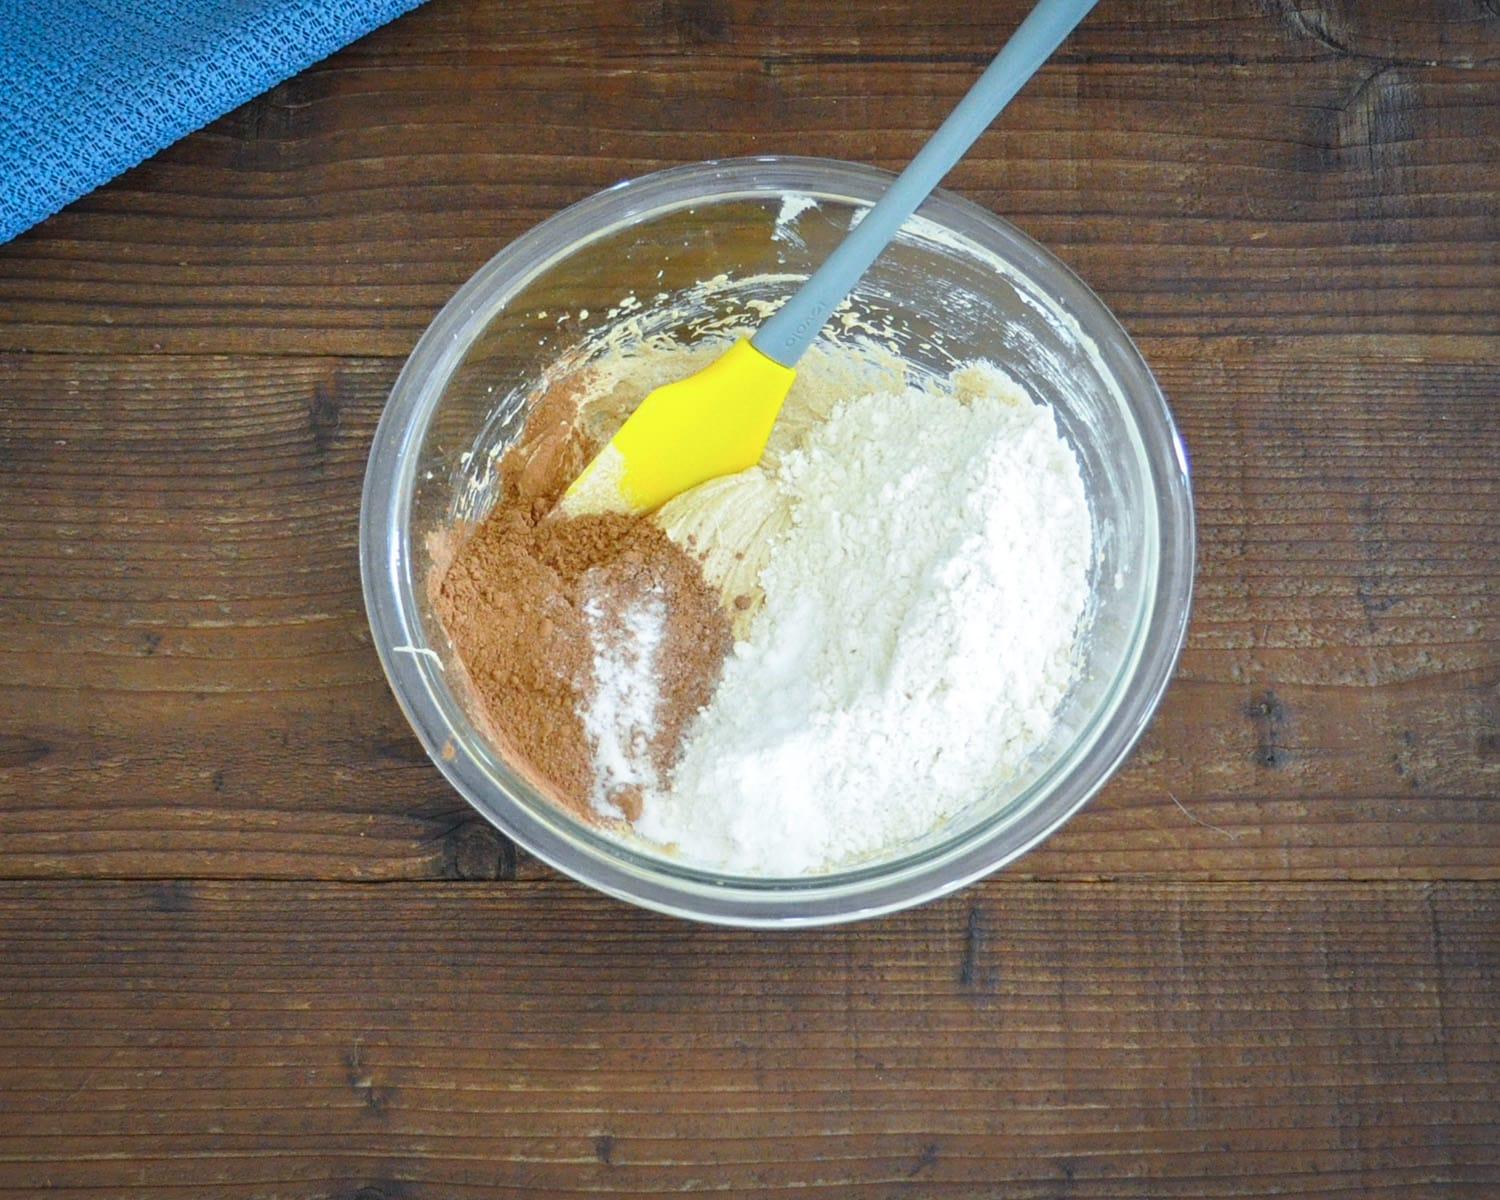 flour, cocoa powder, salt and baking soda added to a creamed mixture of butter, sugar, egg and vanilla in a glass bowl. ready to be stirred with a rubber spatula.